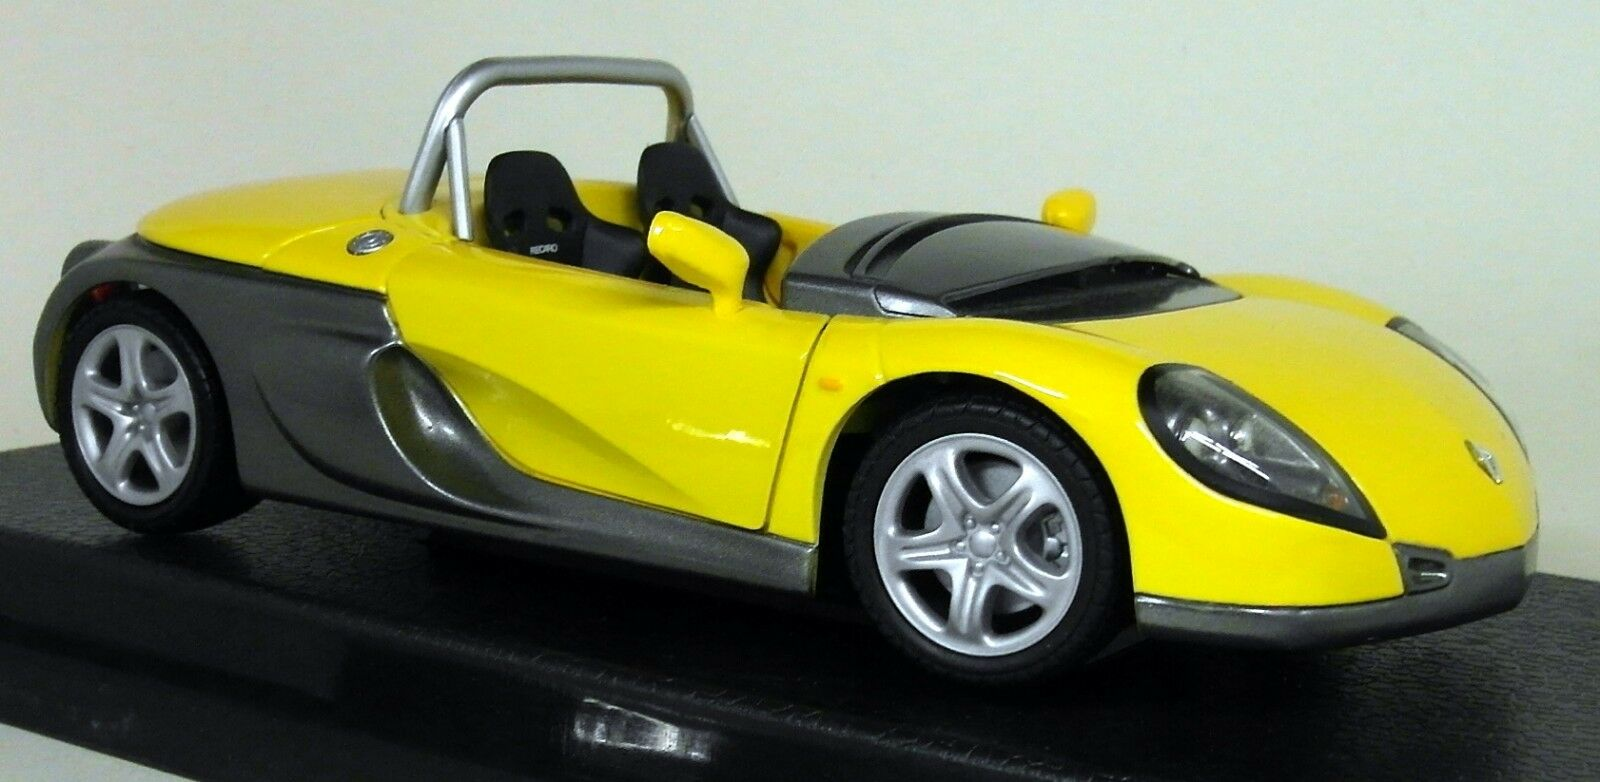 Anson 1 18 Scale 30388 Renault Sport Spider Yellow   Grey Diecast Model Car